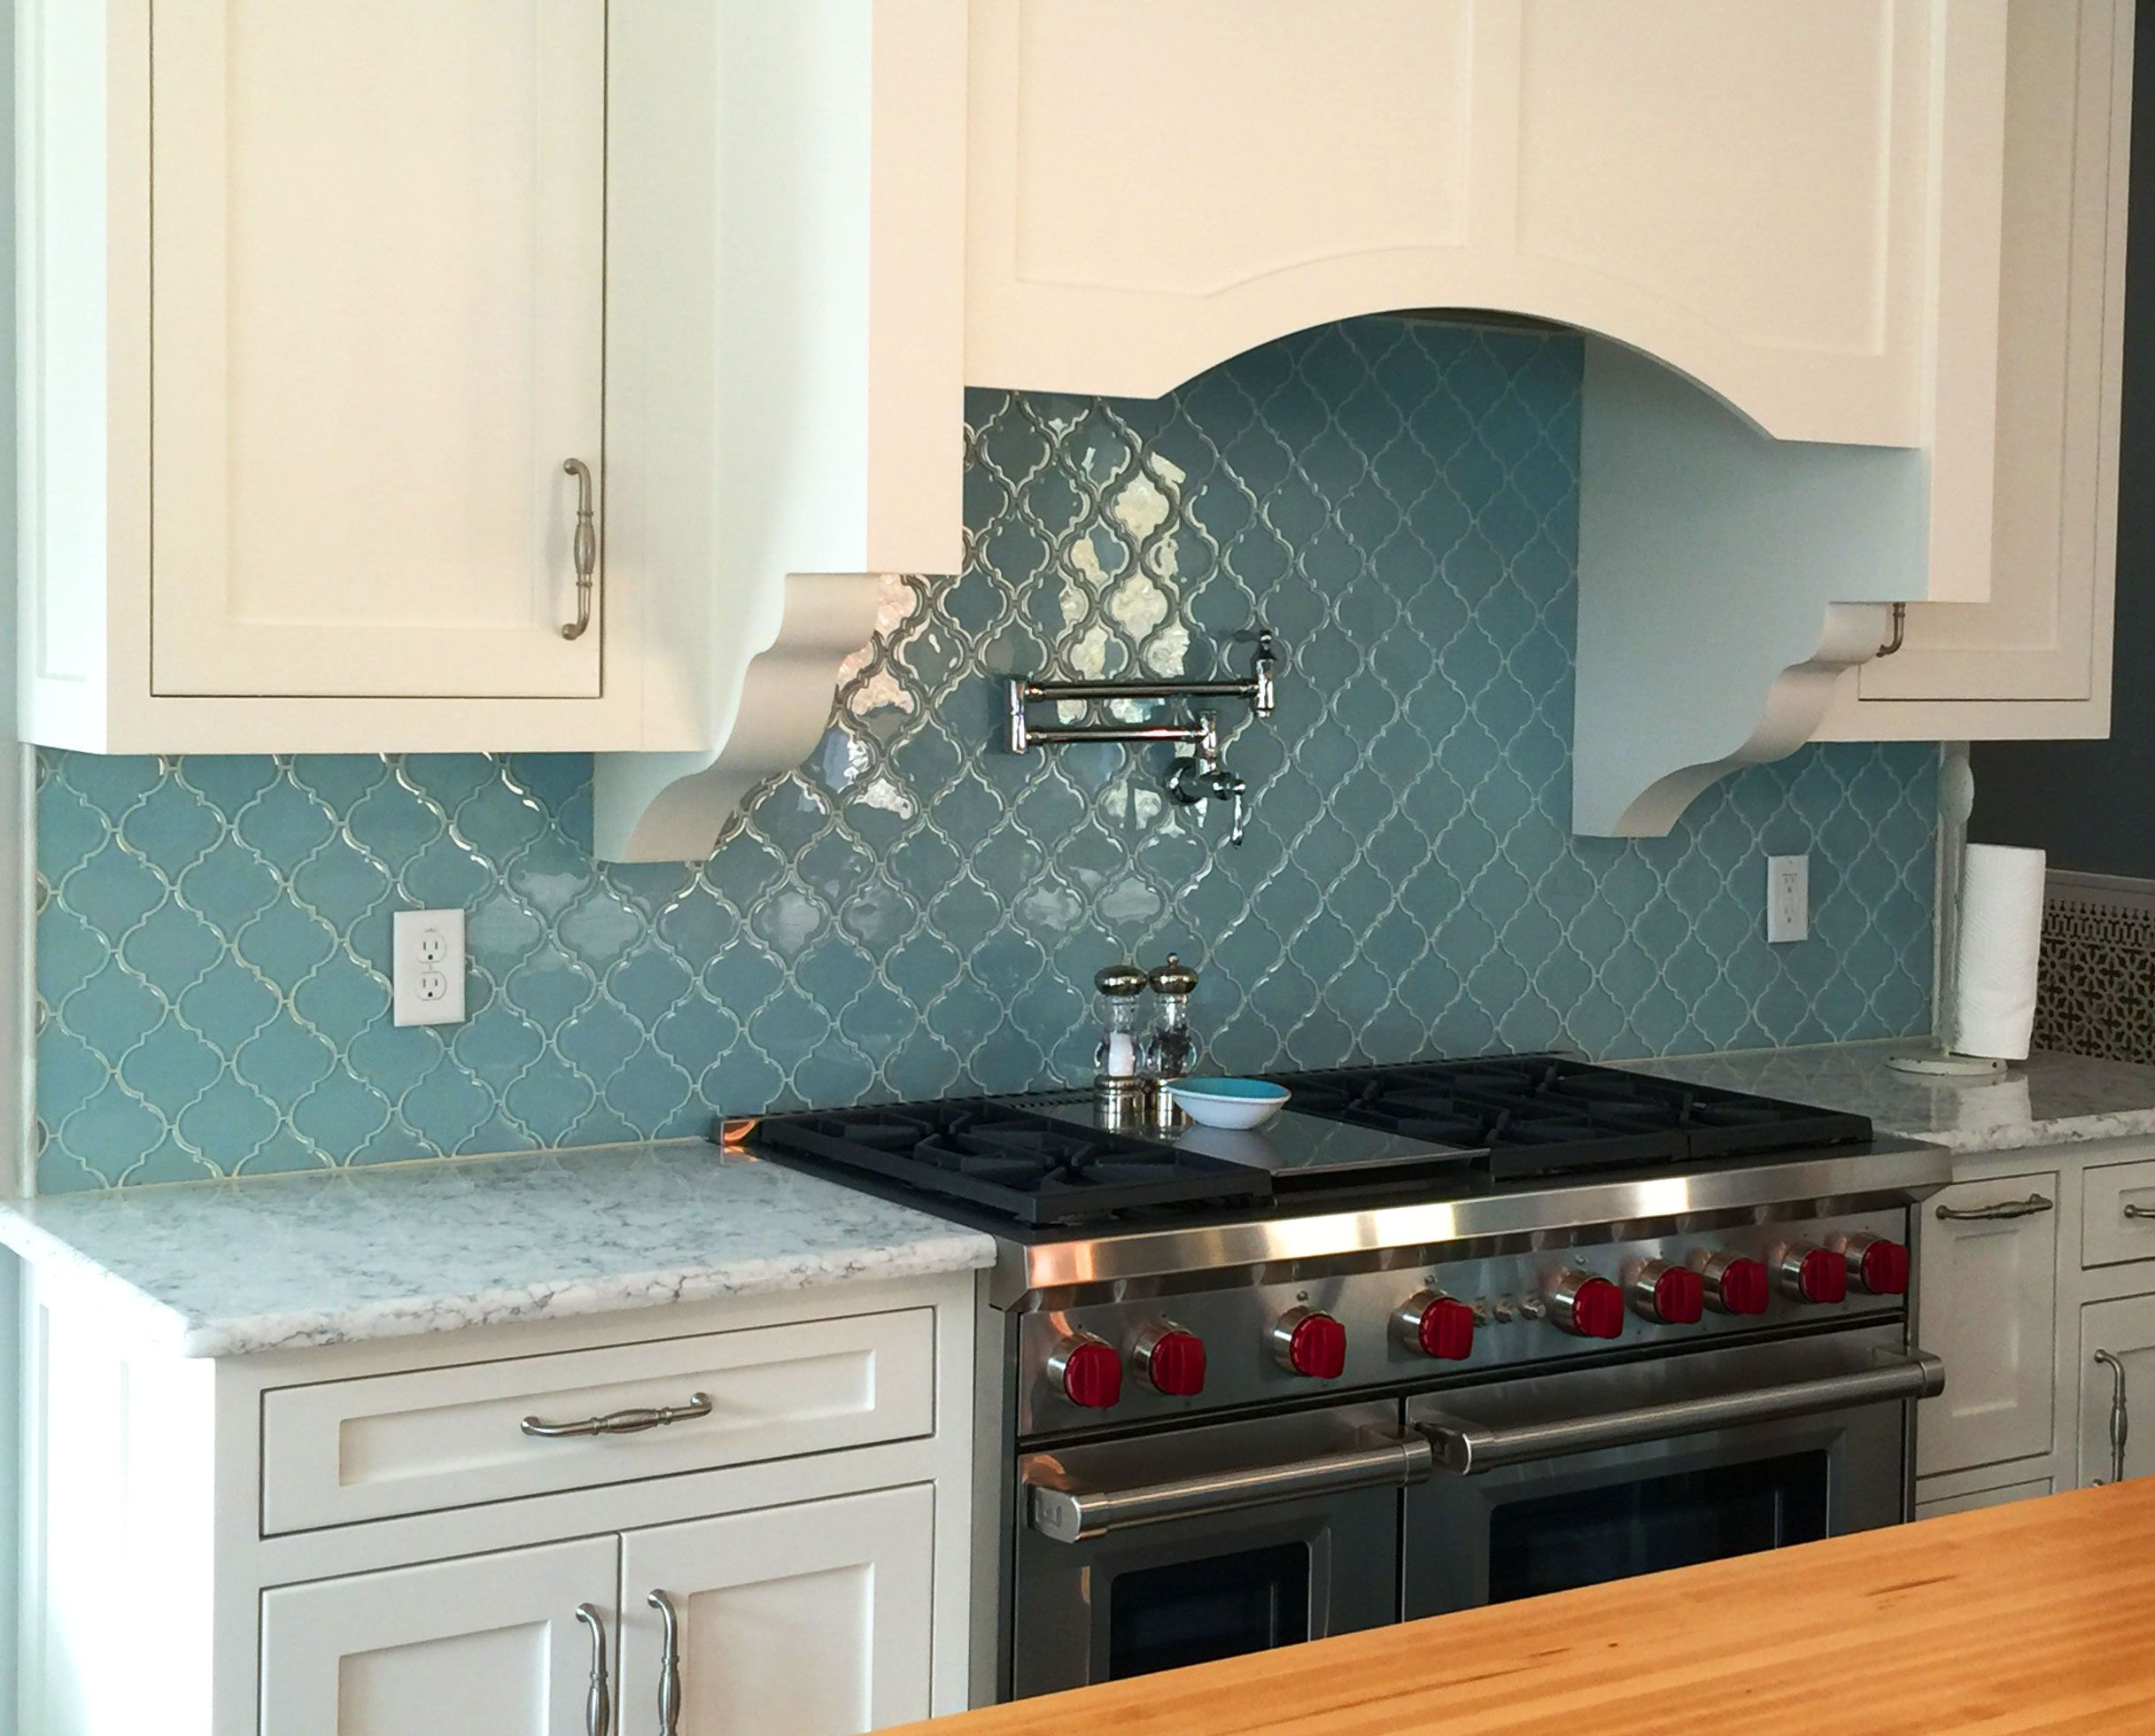 vapor arabesque glass tile glass tile kitchen backsplash arabesque tile backsplash